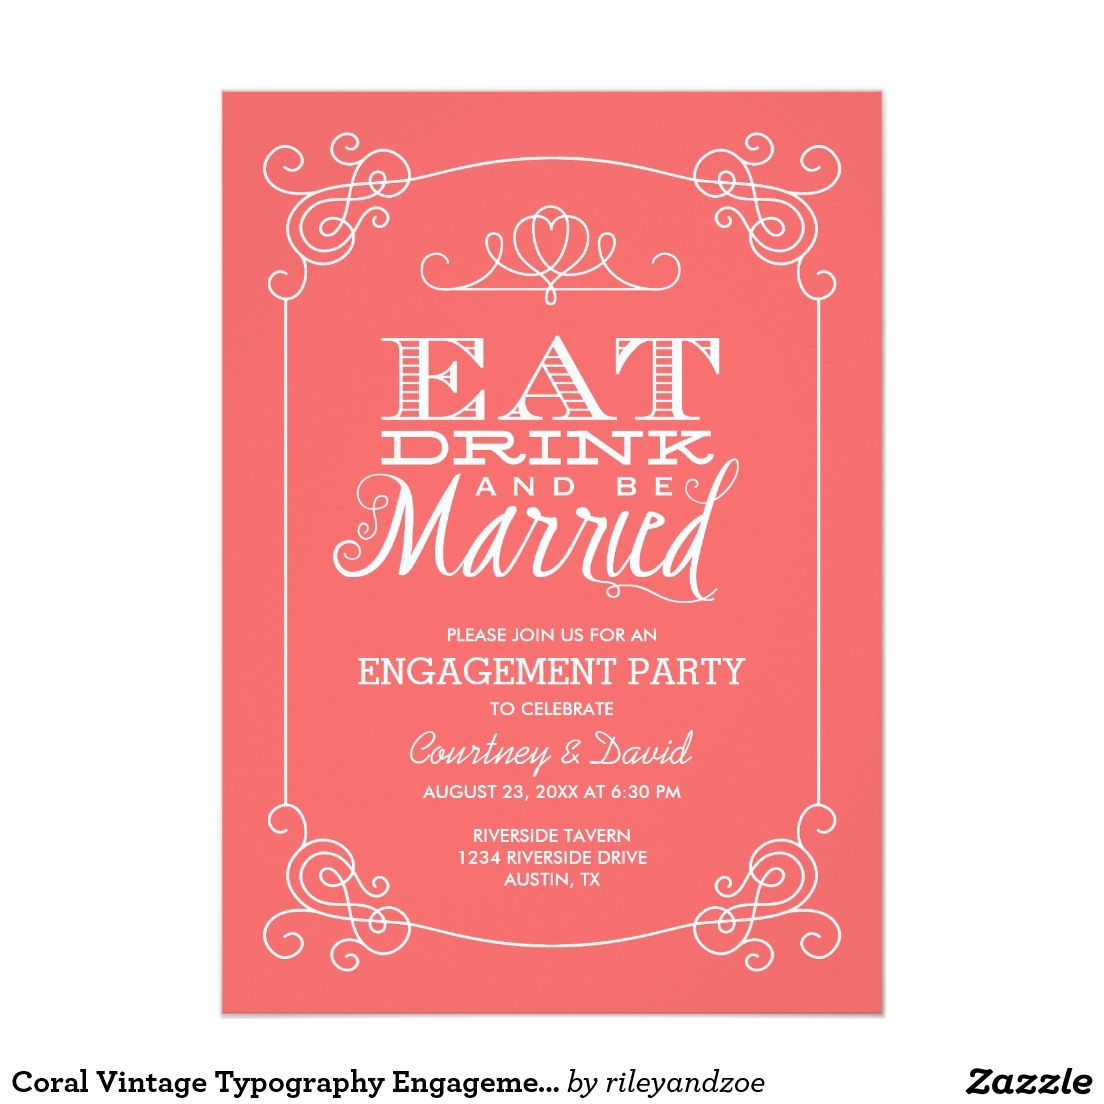 Coral Vintage Typography Engagement Party Card | Vintage typography ...